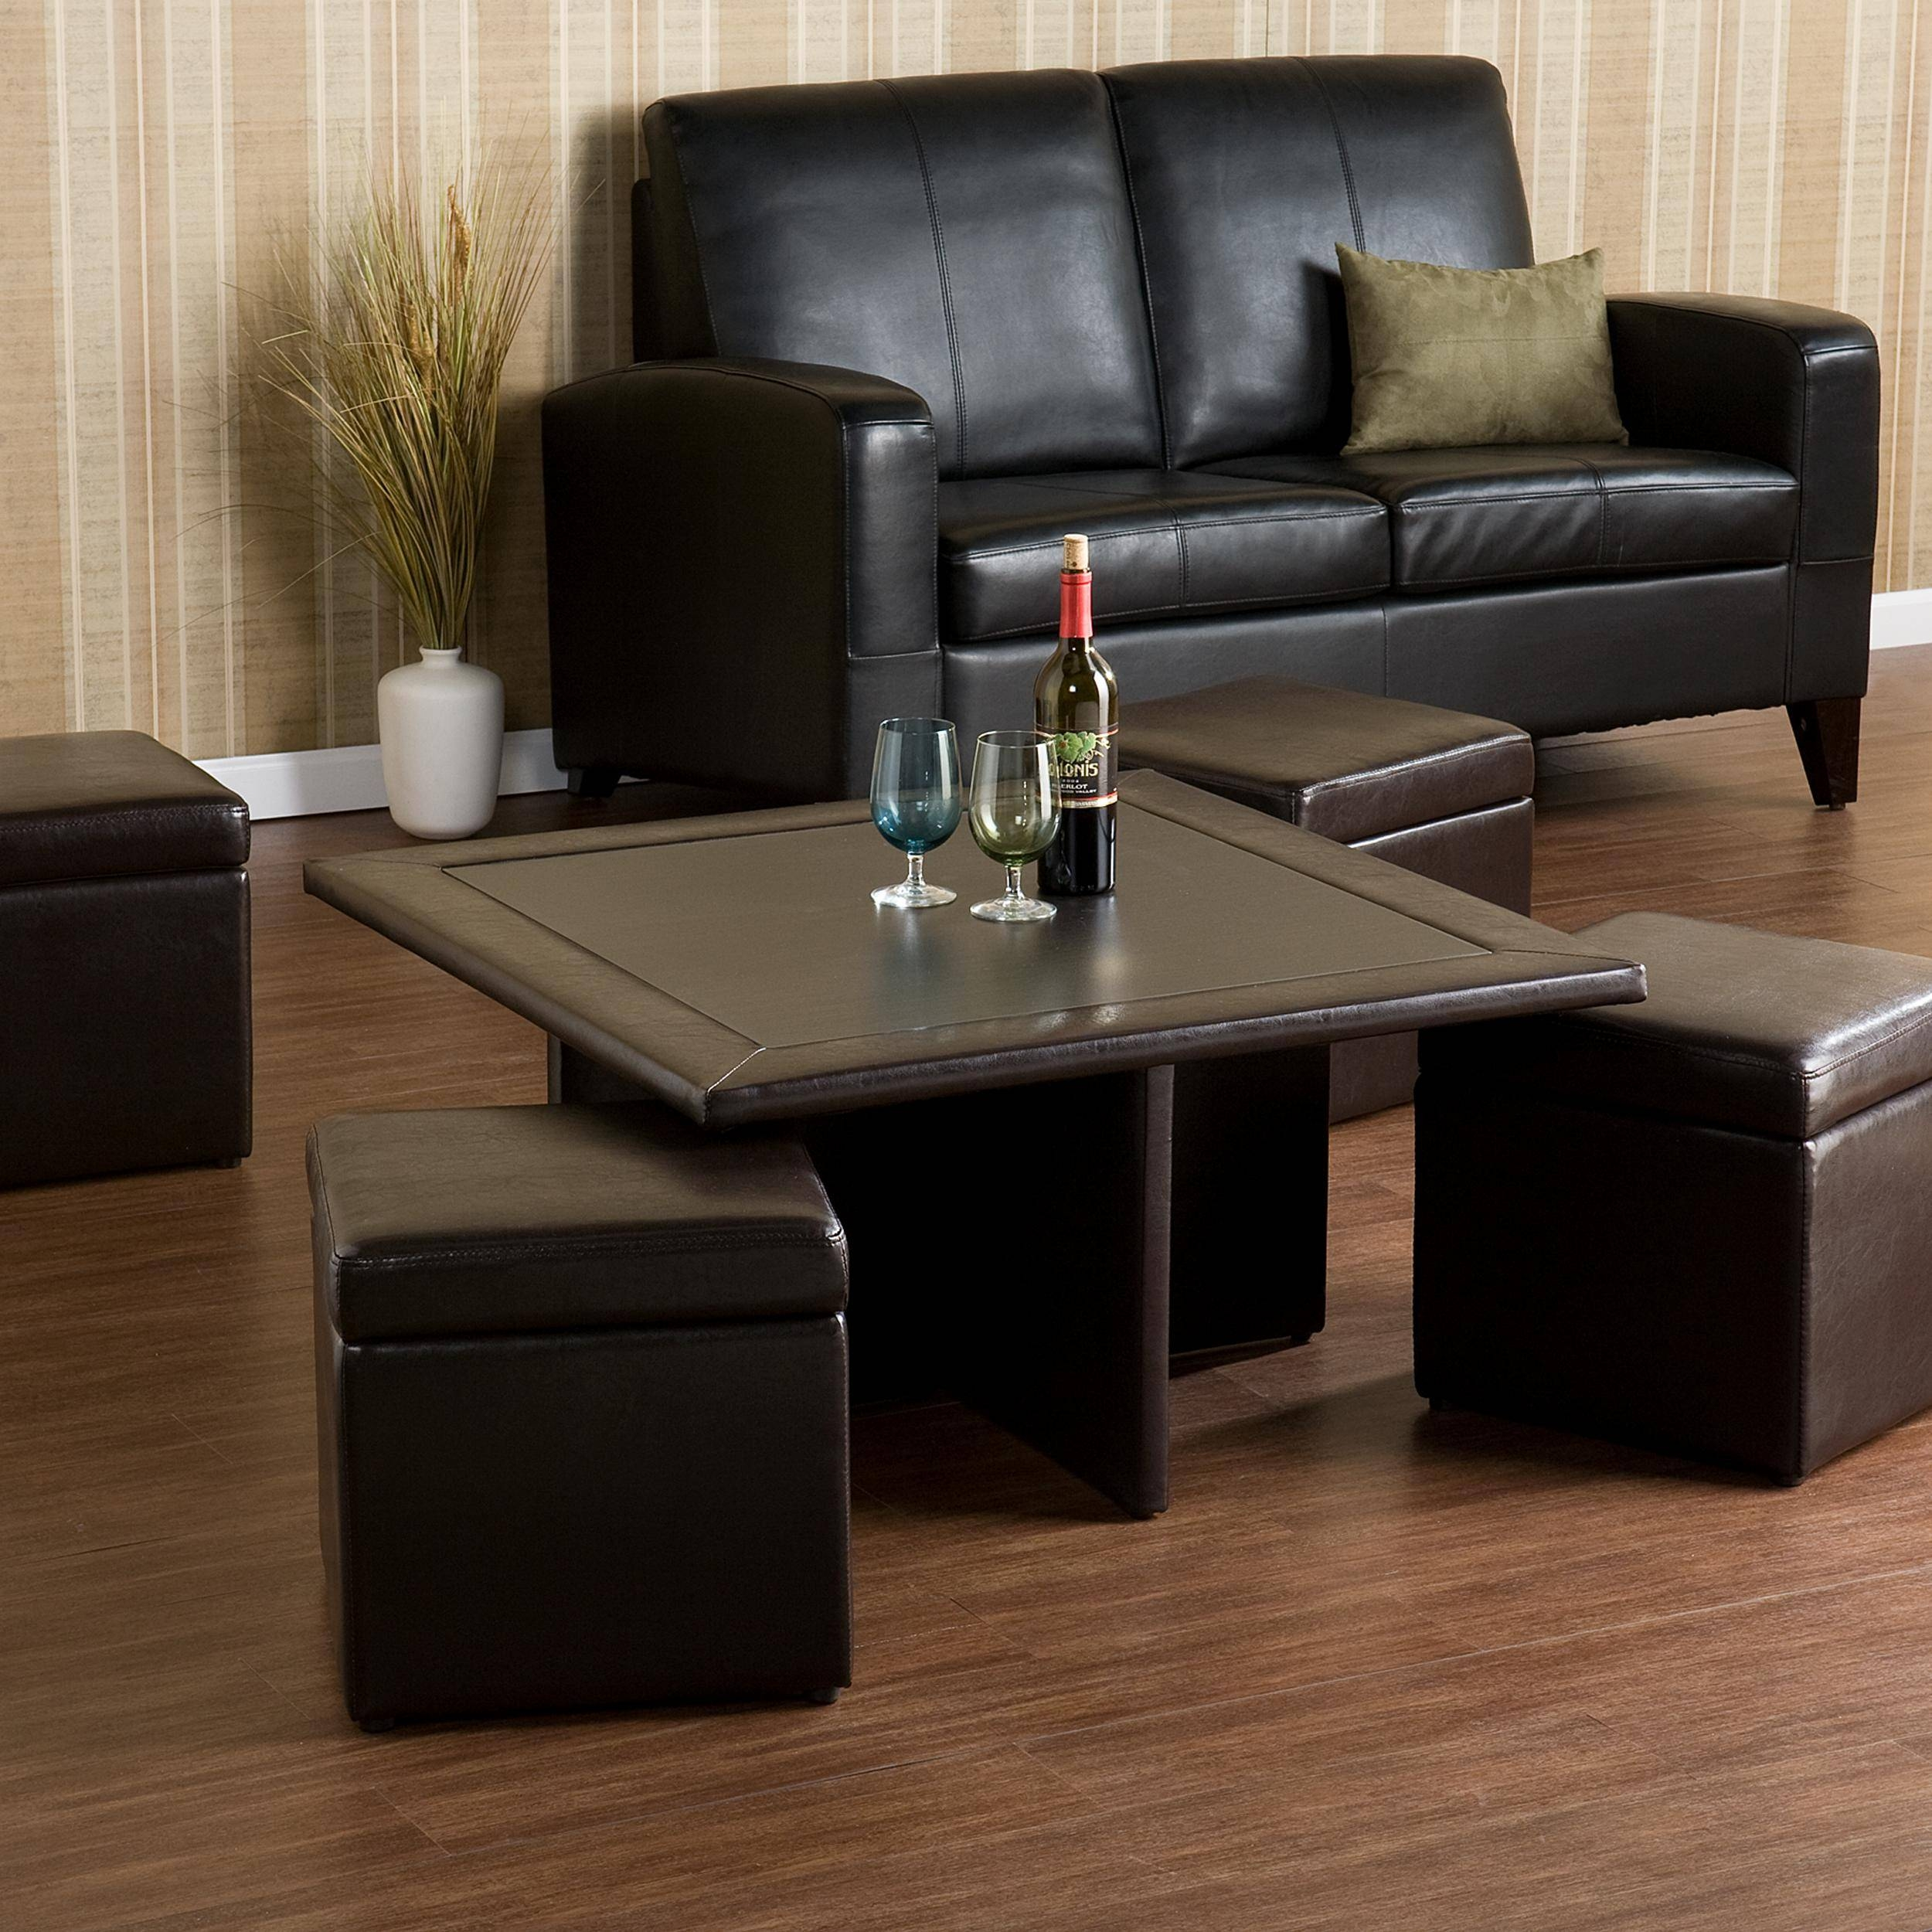 Crestfield Dark Brown Coffee Table Storage Ottoman Set | Coffee throughout Brown Leather Ottoman Coffee Tables With Storages (Image 19 of 30)